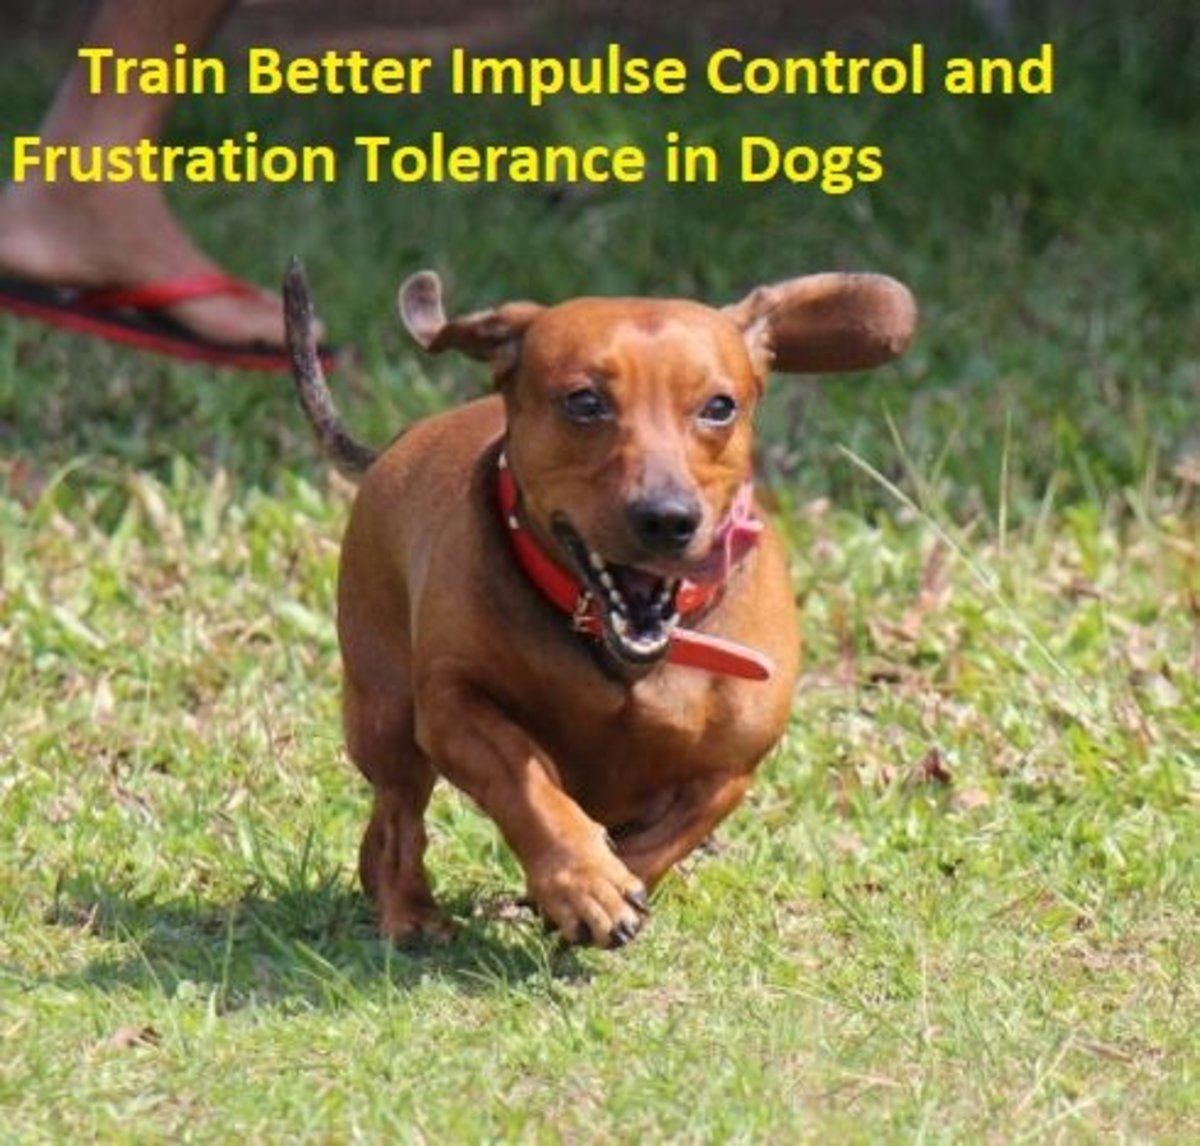 Exercises for Training Dogs Impulse Control and Frustration Tolerance